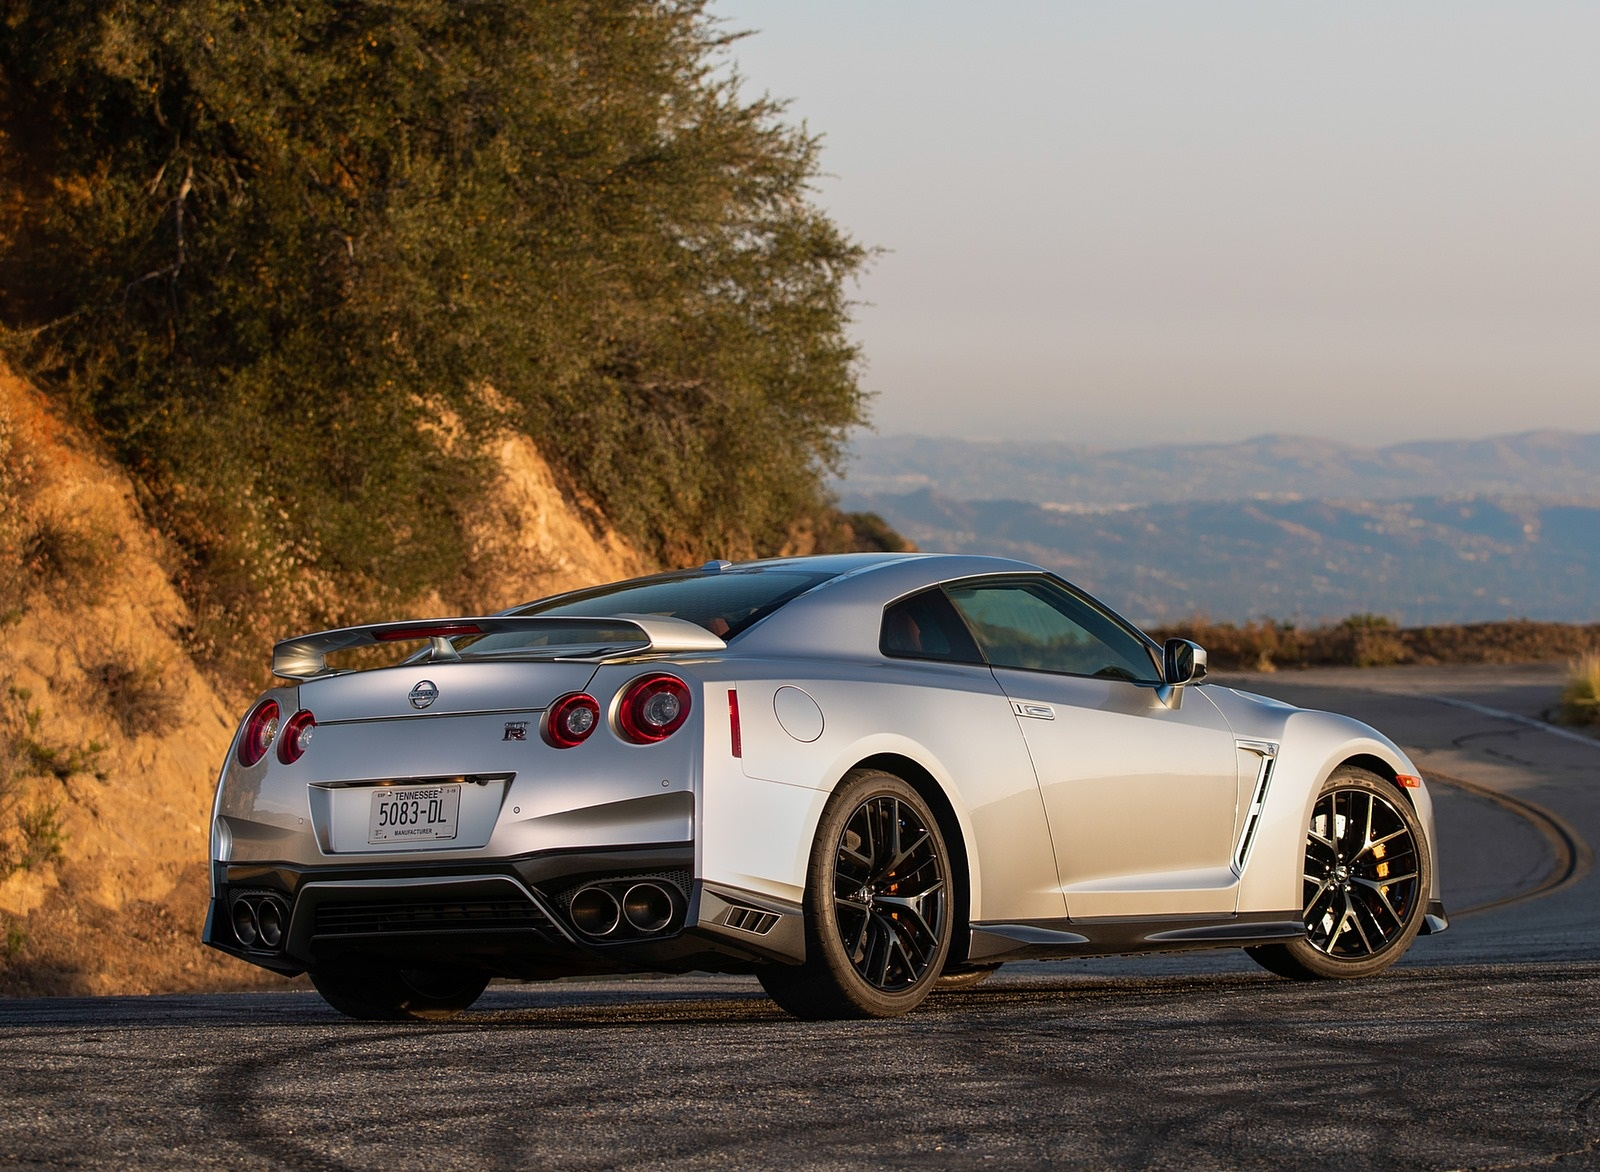 2019 Nissan GT-R Rear Three-Quarter Wallpapers #8 of 17